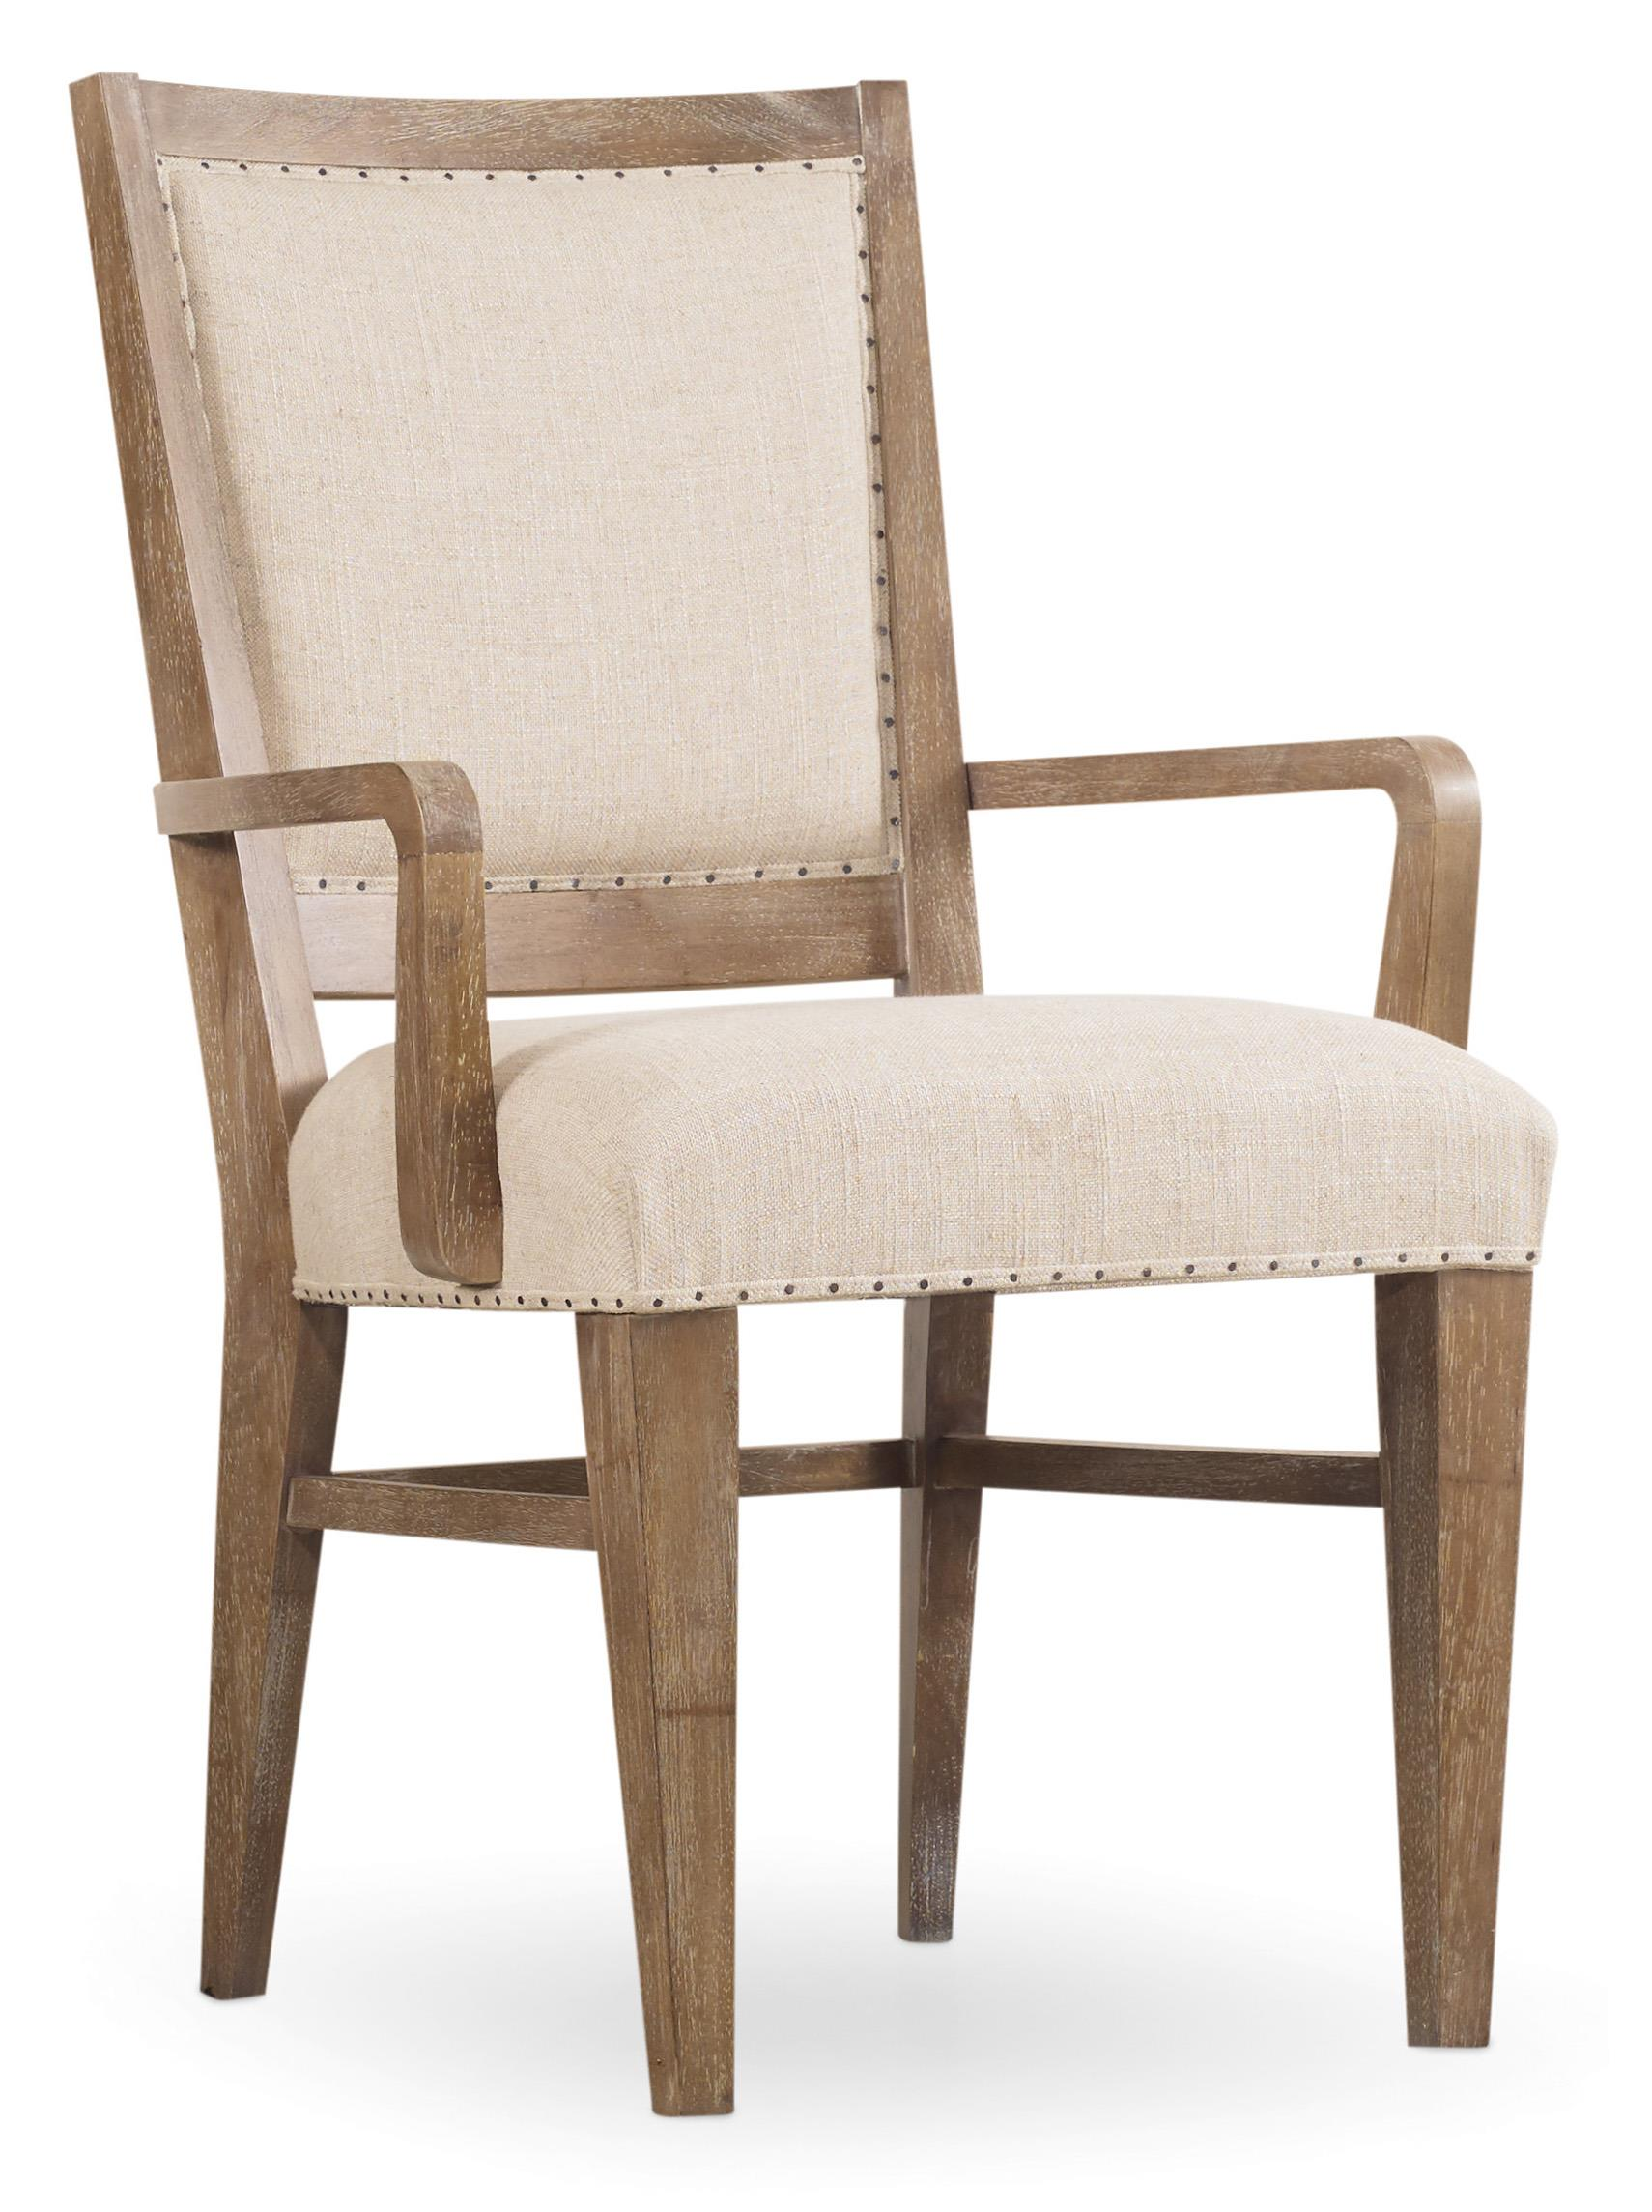 Hooker Furniture Studio 7H Stol Upholstered Arm Chair - Item Number: 5382-75400